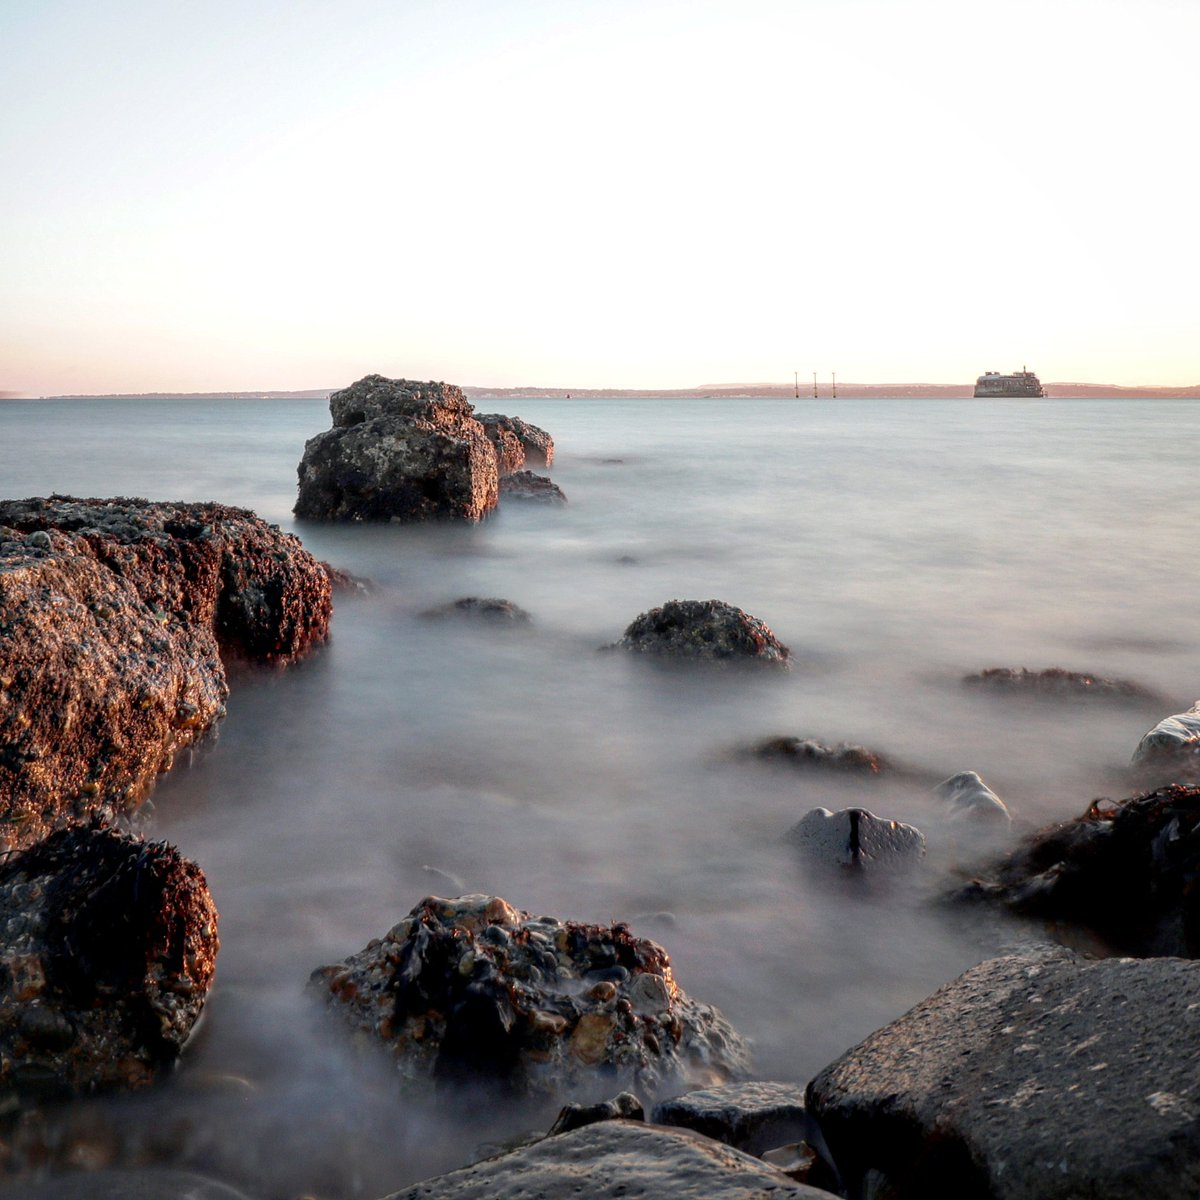 b0f75fa6 ... #mist of #tide #swirling #twisting #sea #lapping #swell #ripples  #gushing #horizon #becons #longexposure #Southsea #seascape #time #relaxing  #peaceful ...